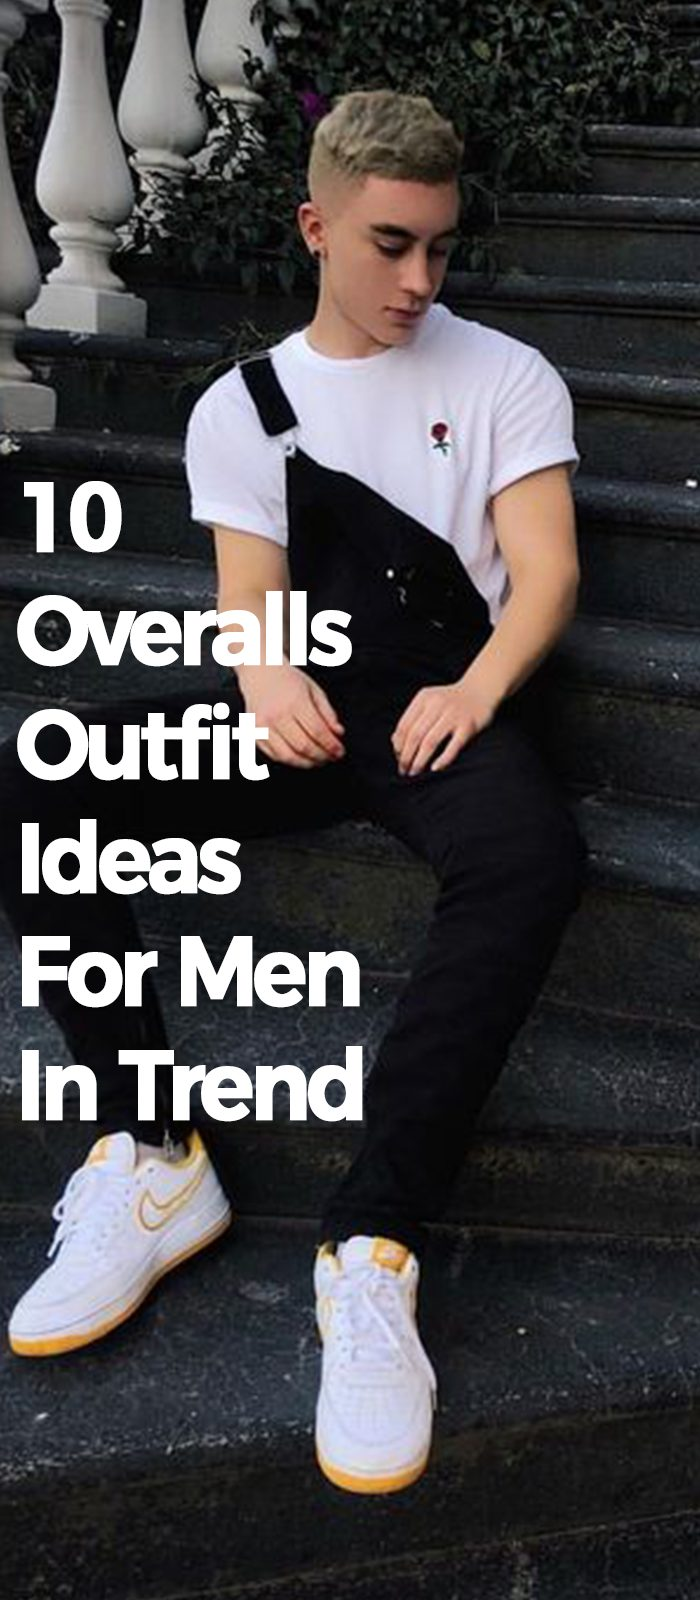 10 Overalls Outfit Ideas For Men In Trend.